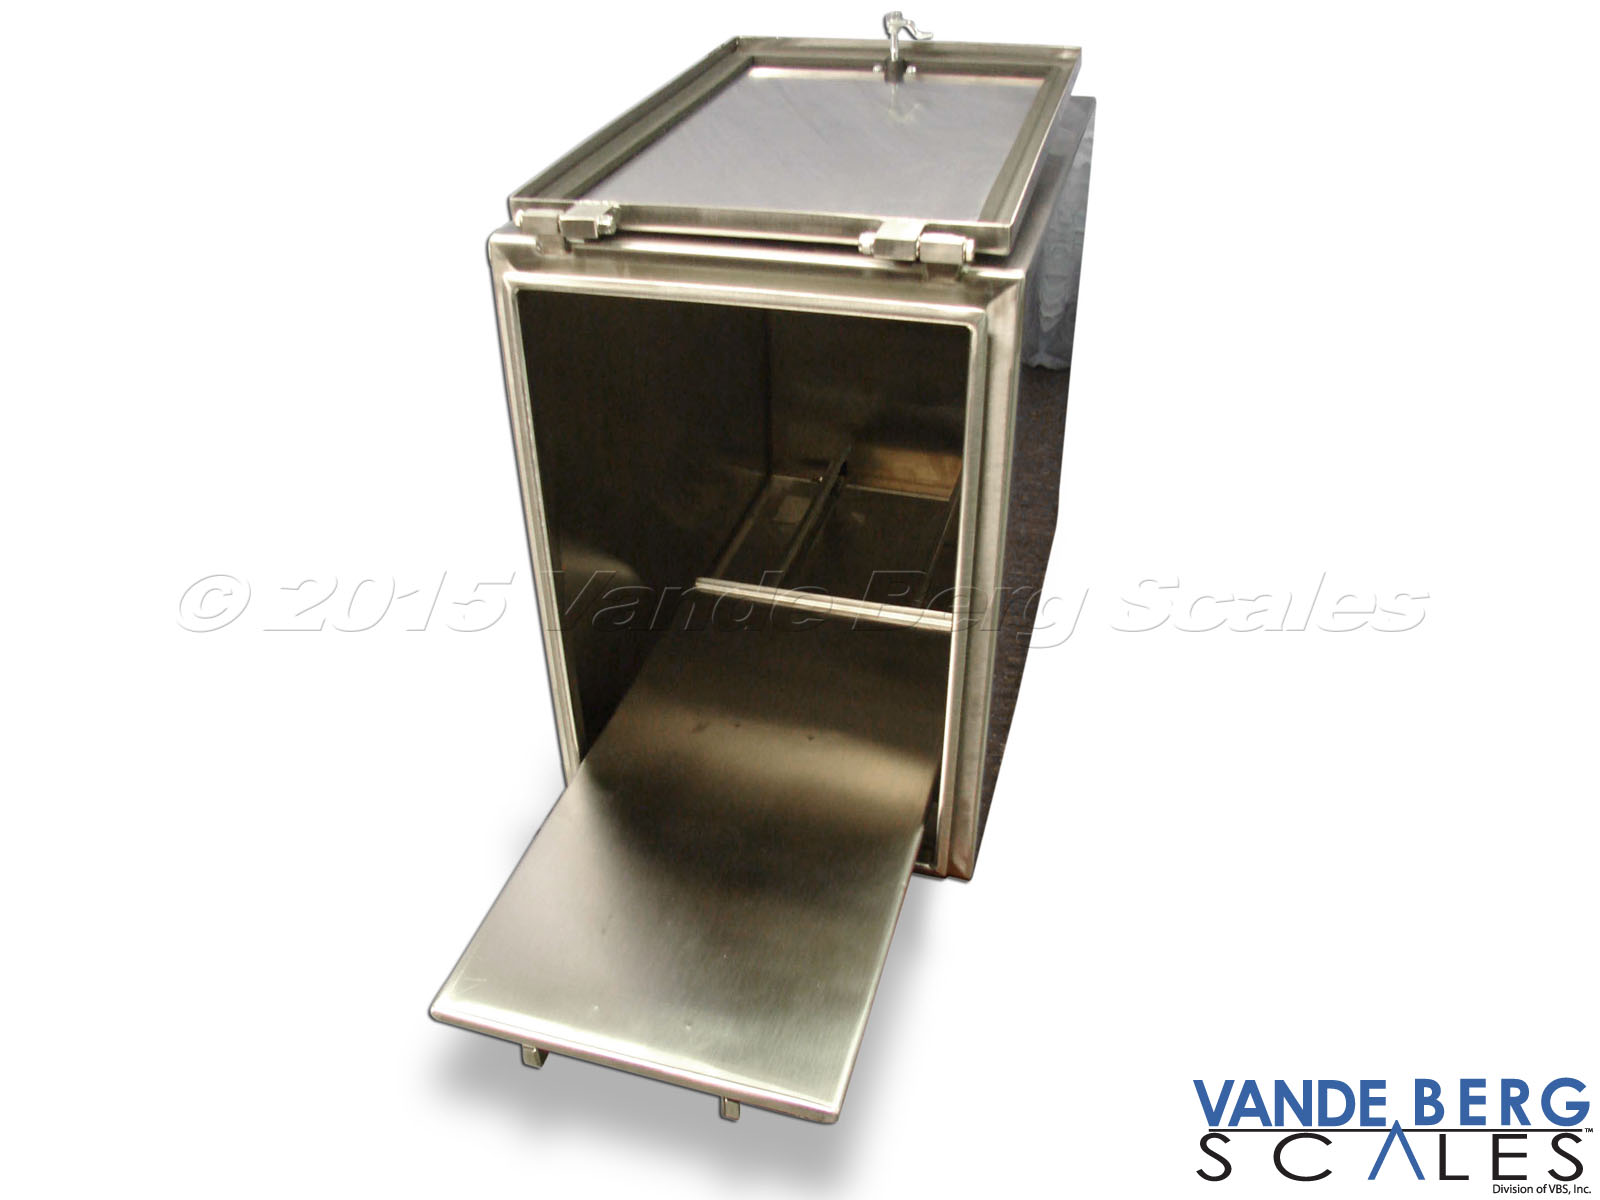 Stainless steel NEMA-4X printer enclosure with slide-out tray permits easy access to cables and label stock replacement